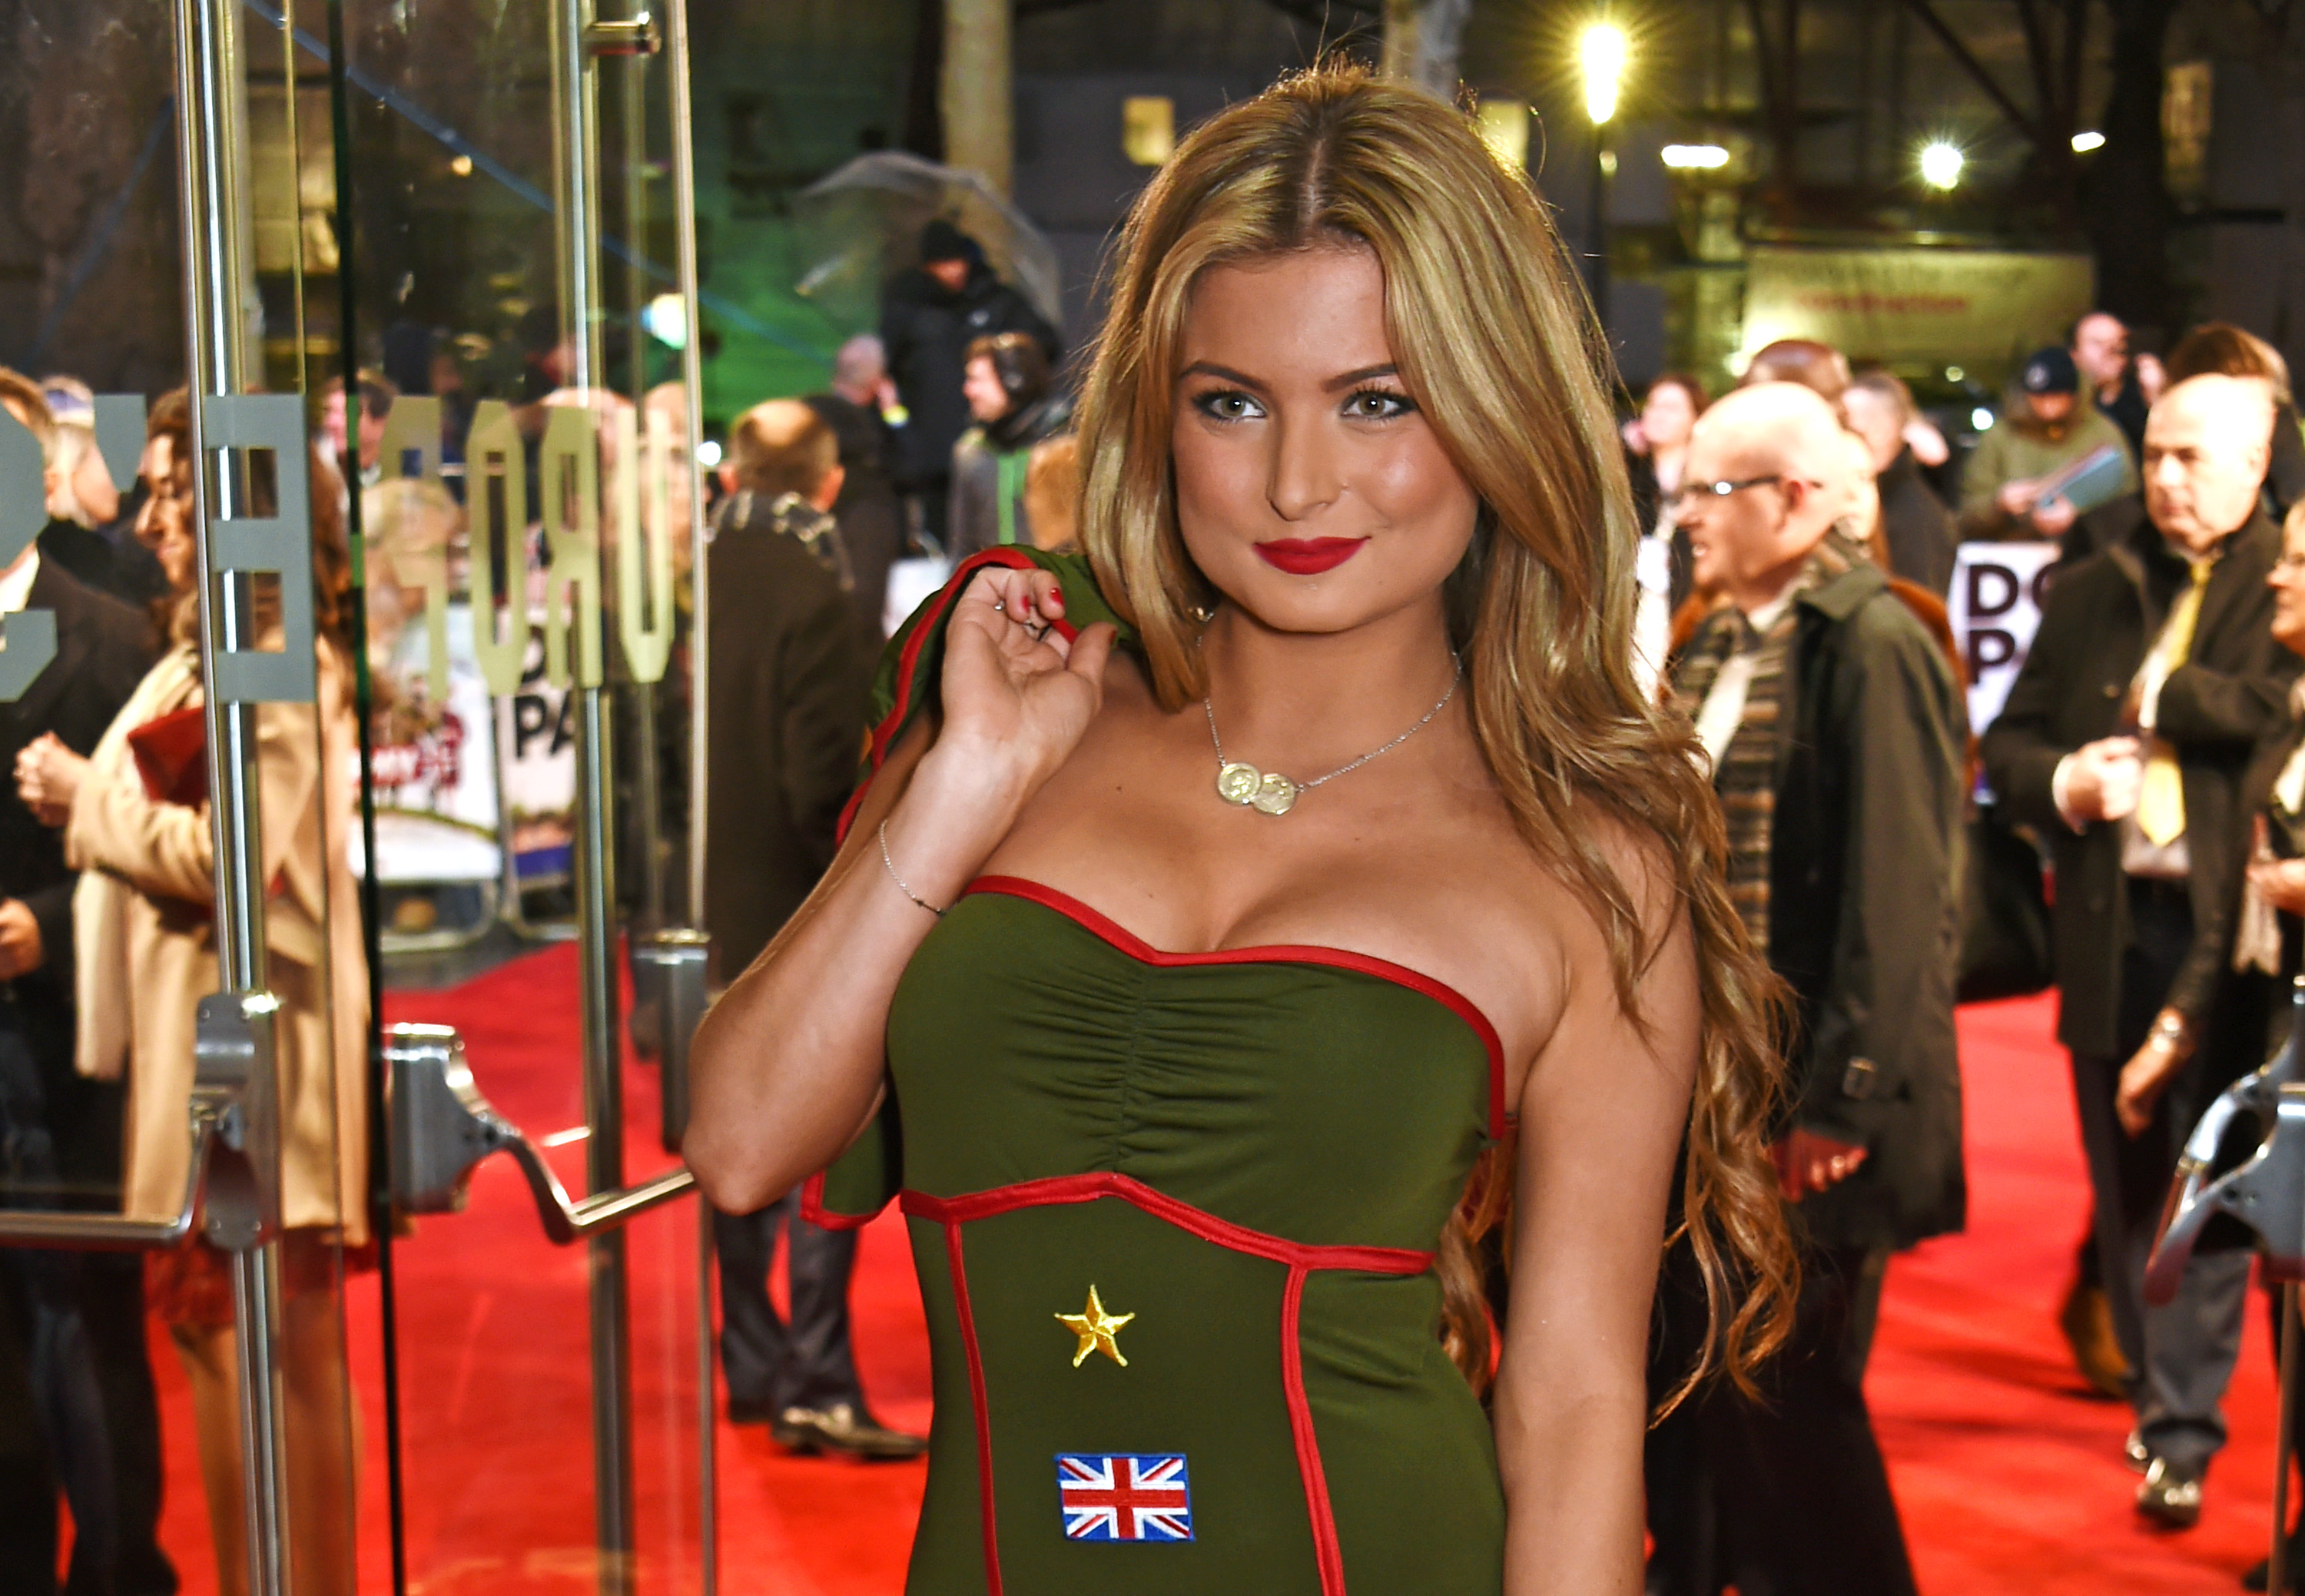 LONDON, ENGLAND - JANUARY 26:  Zara Holland, Miss Great Britain 2015/16, attends the World Premiere of 'Dad's Army' at Odeon Leicester Square on January 26, 2016 in London, United Kingdom.  (Photo by David M. Benett/Dave Benett/WireImage)